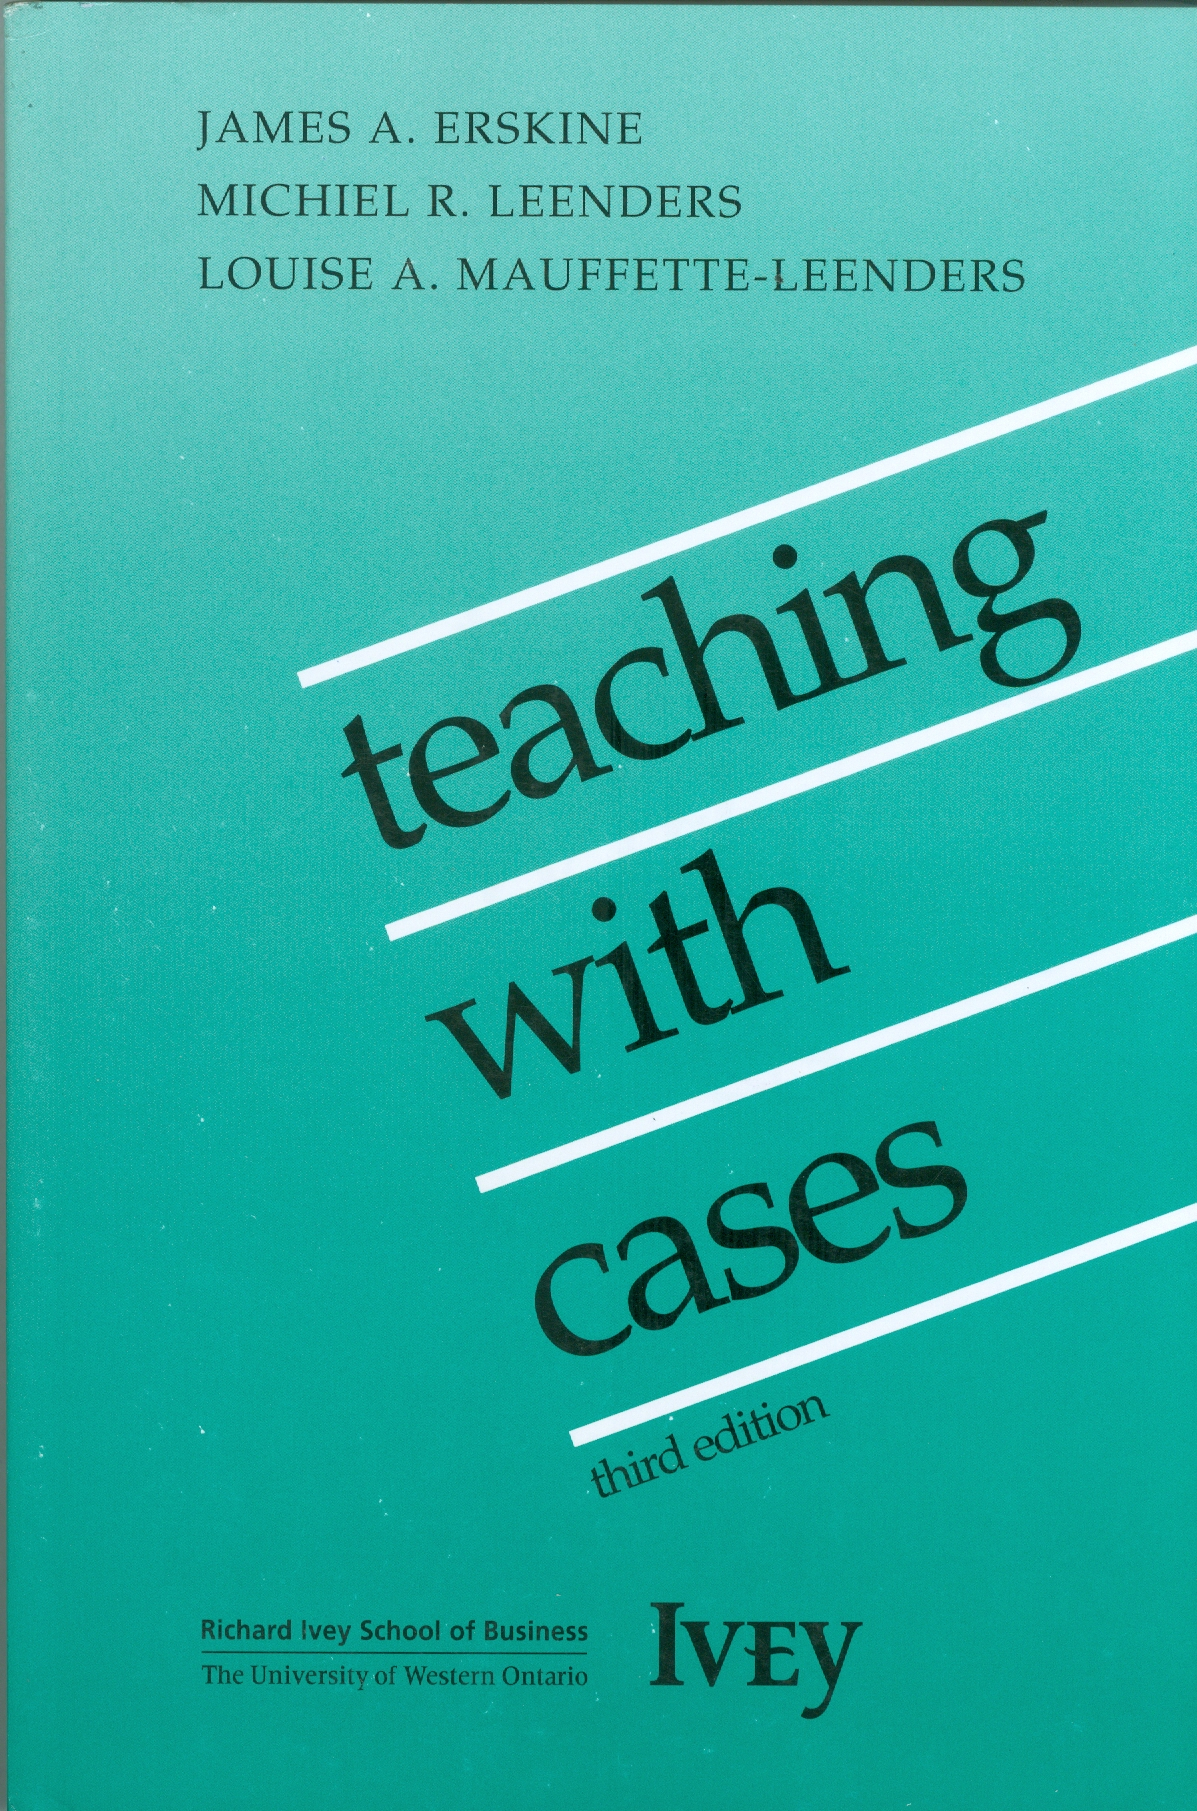 teaching with cases0001.jpg